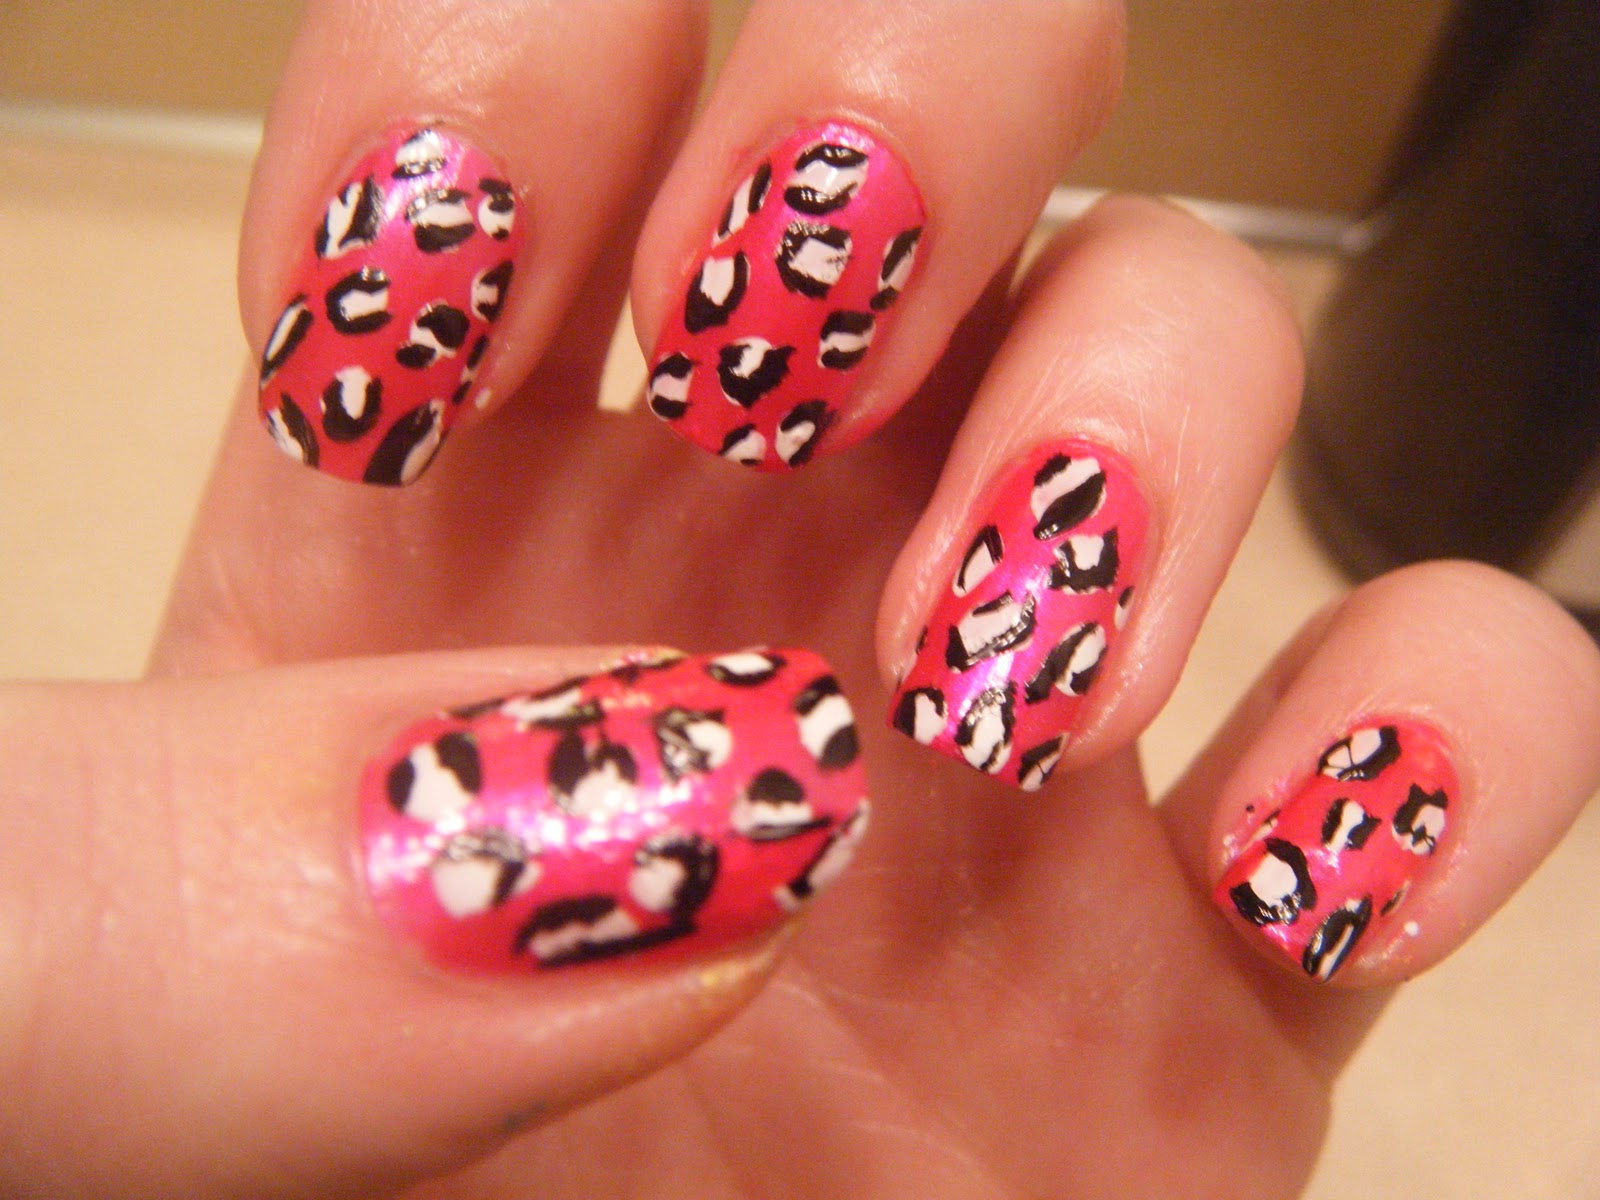 Hail's Nails: Cheetah Print Nails